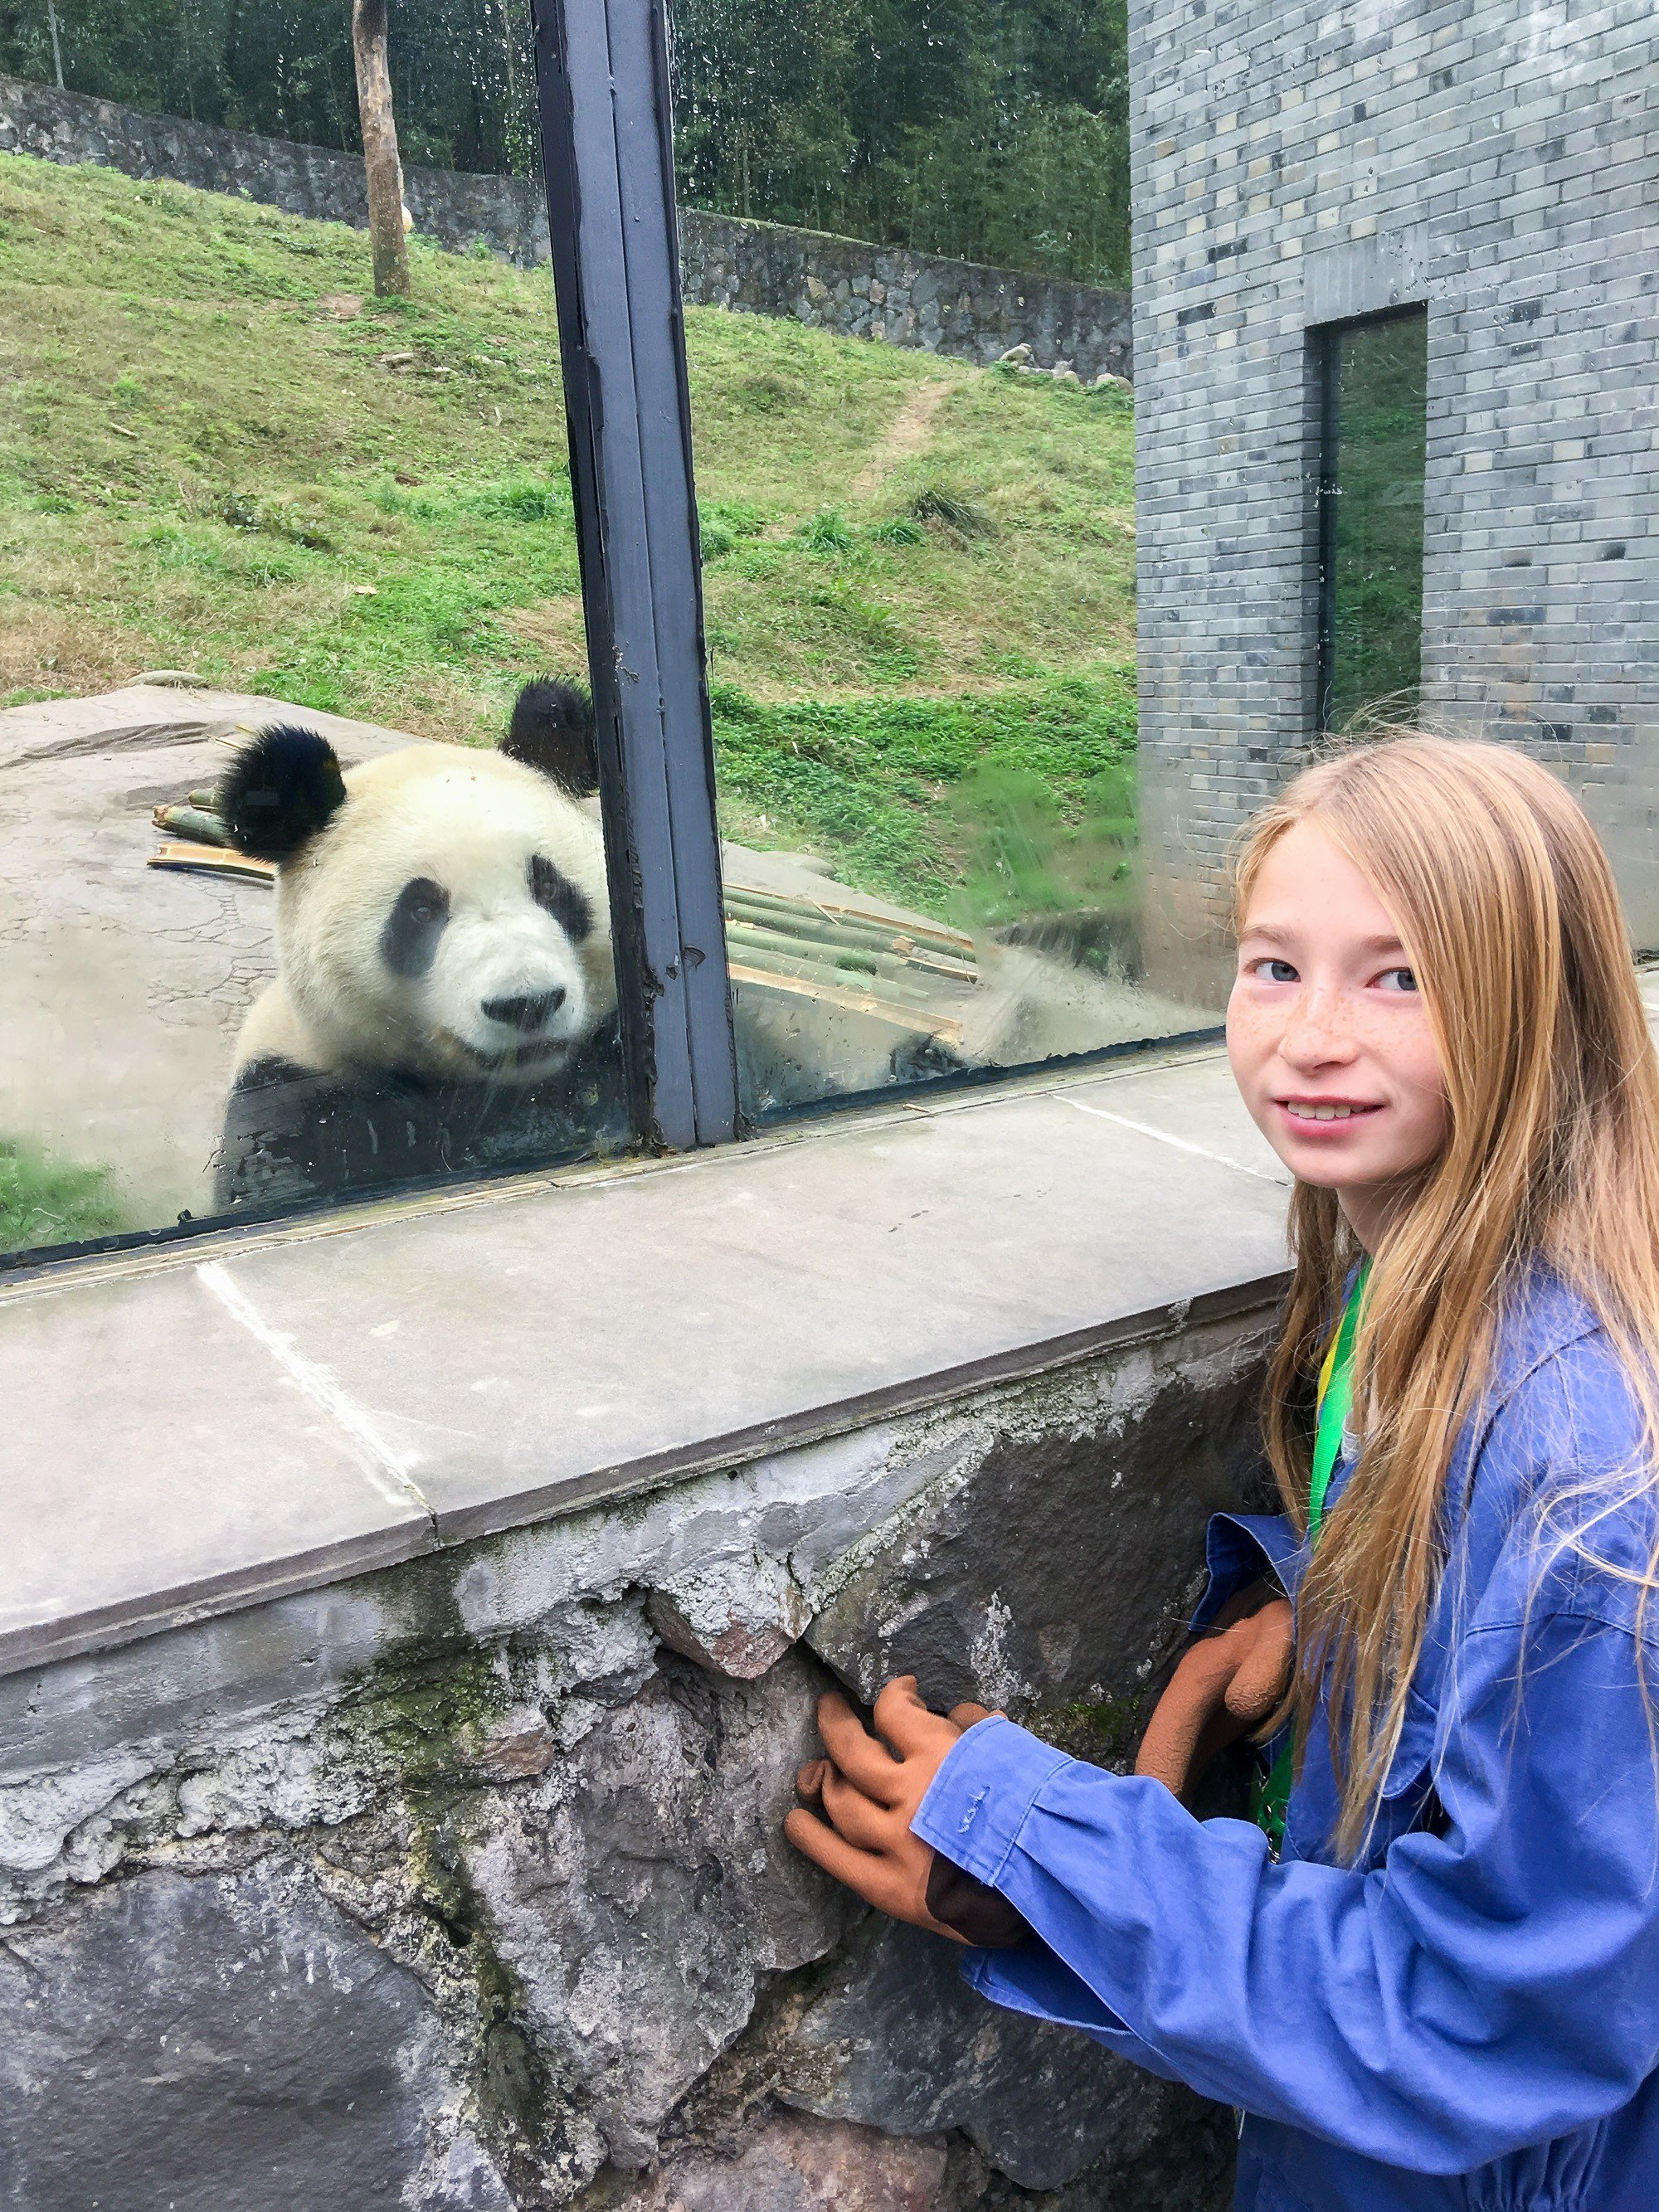 Volunteering at Dujiangyan Panda Base is a great thing to do in Chengdu.